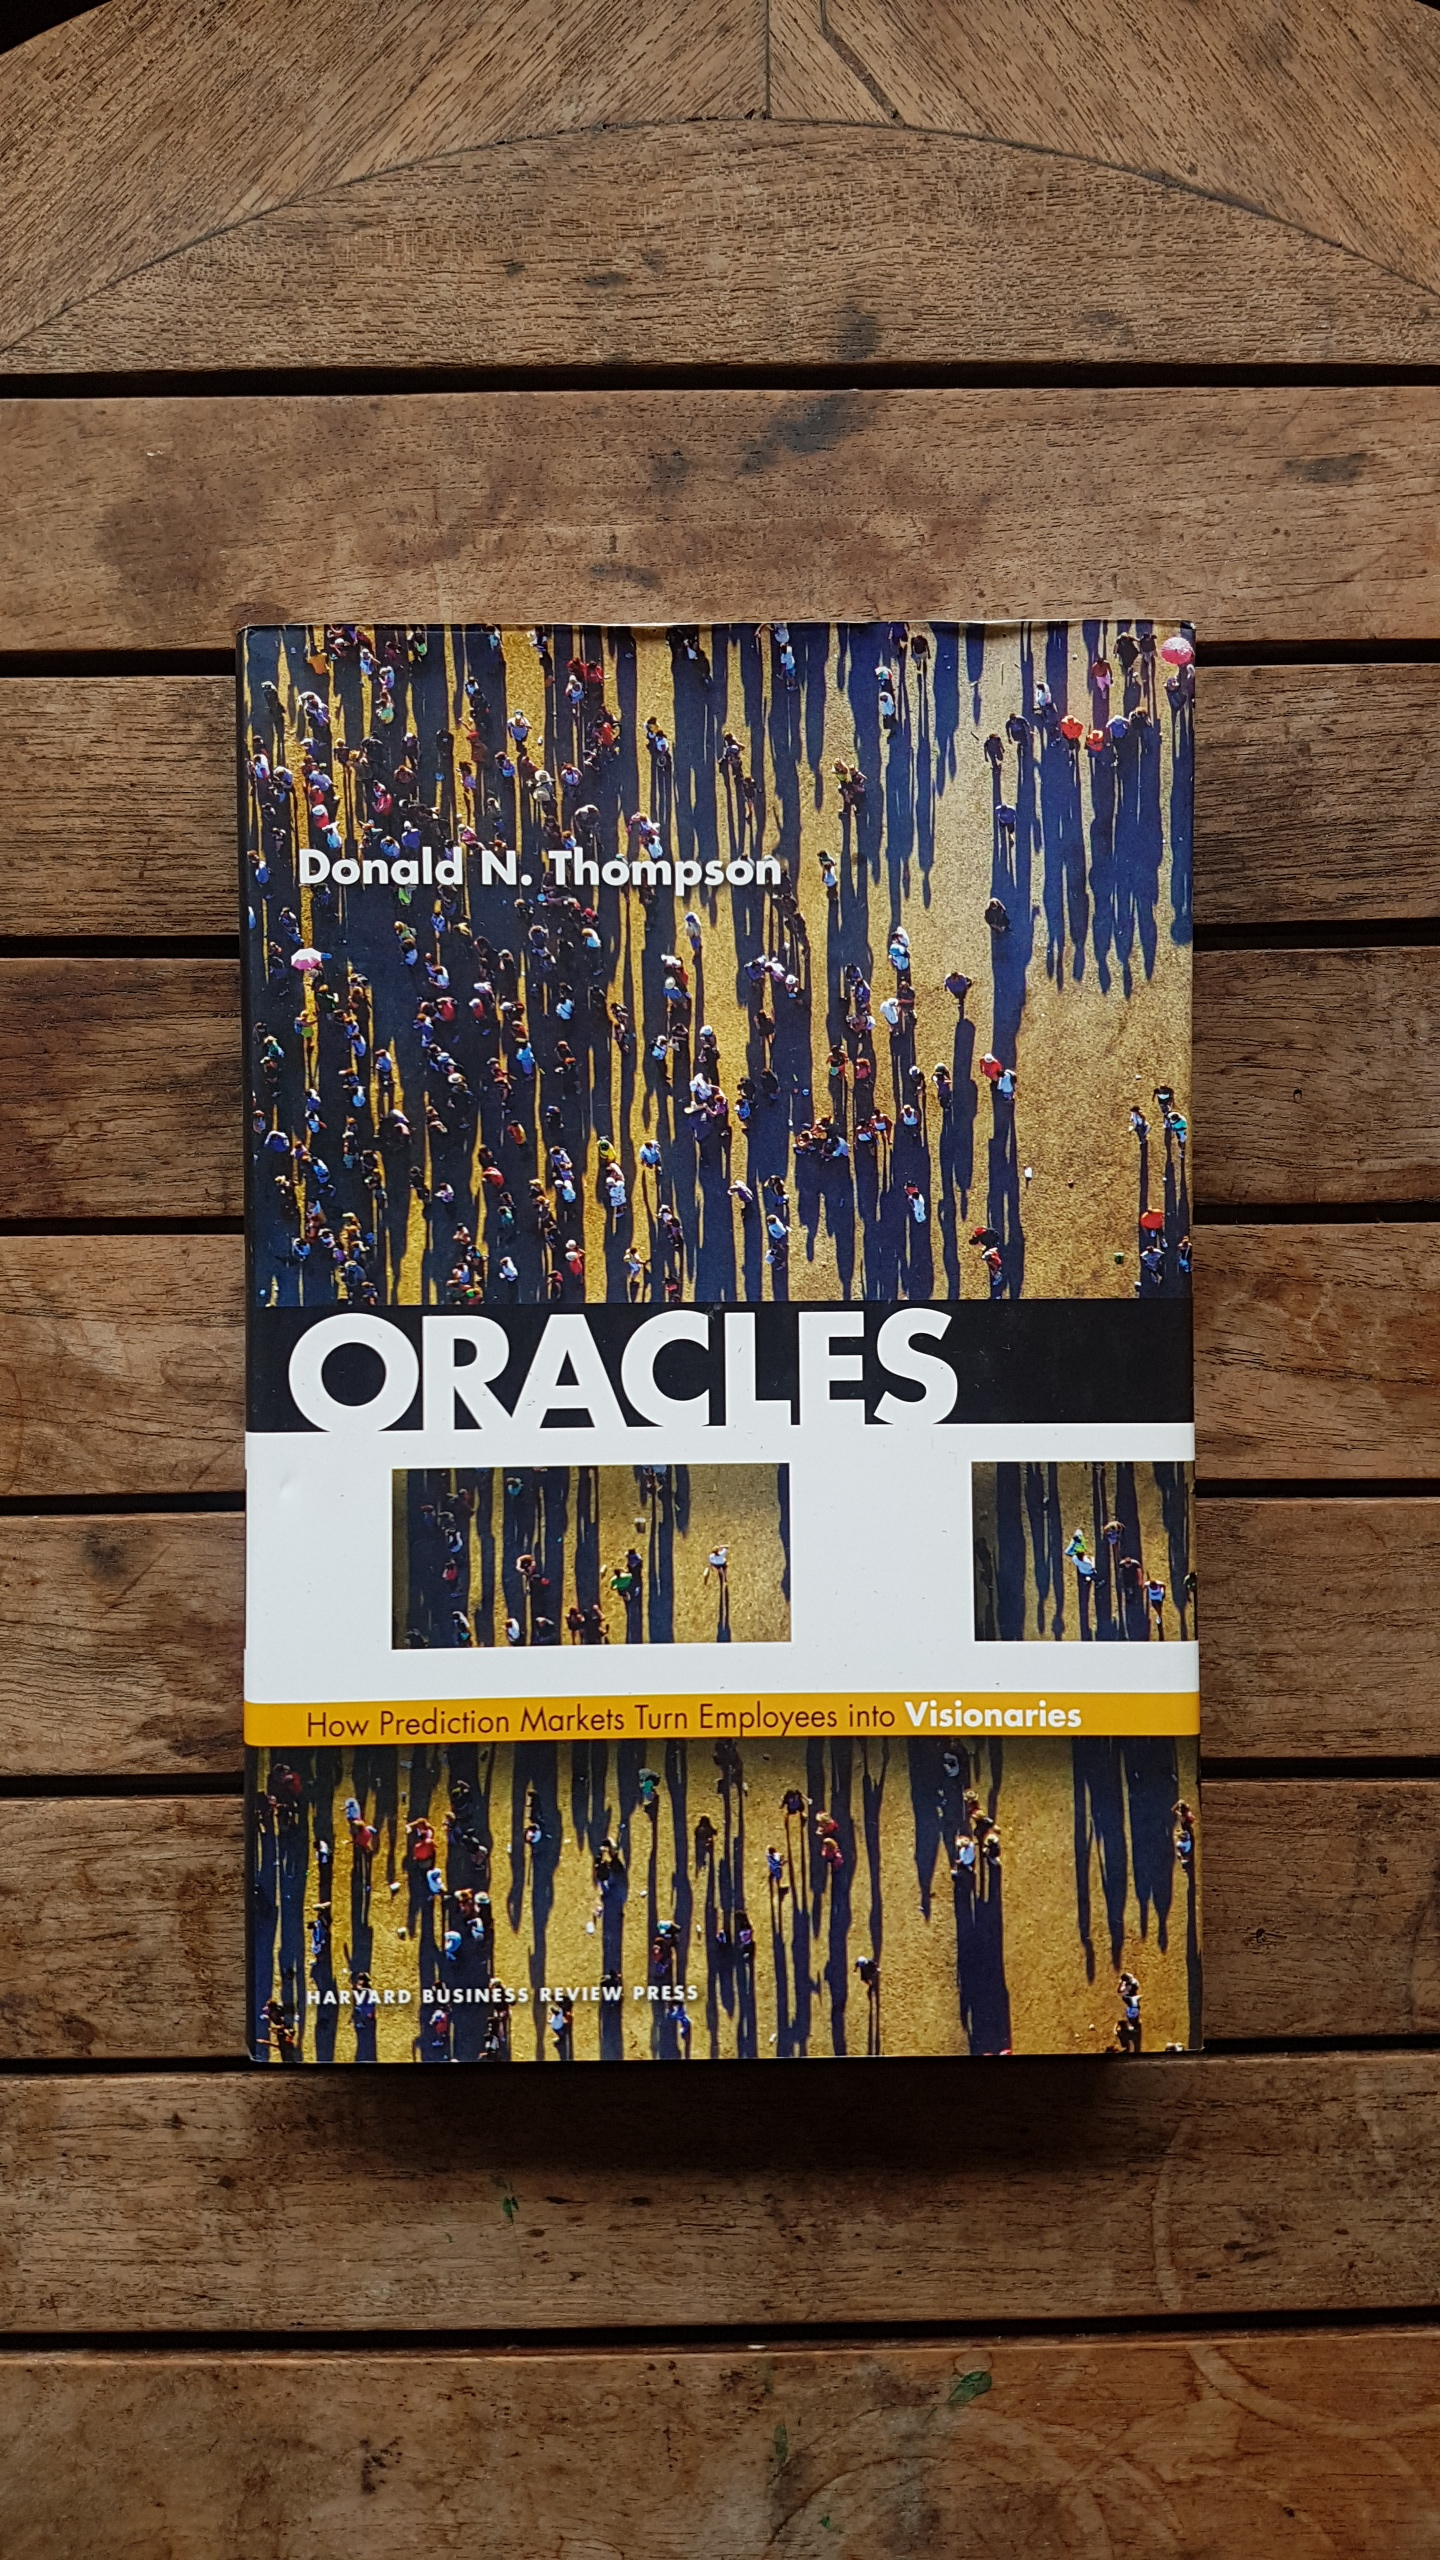 Oracles: How Prediction Markets Turn Employees into Visionaries by Donald N. Thompson